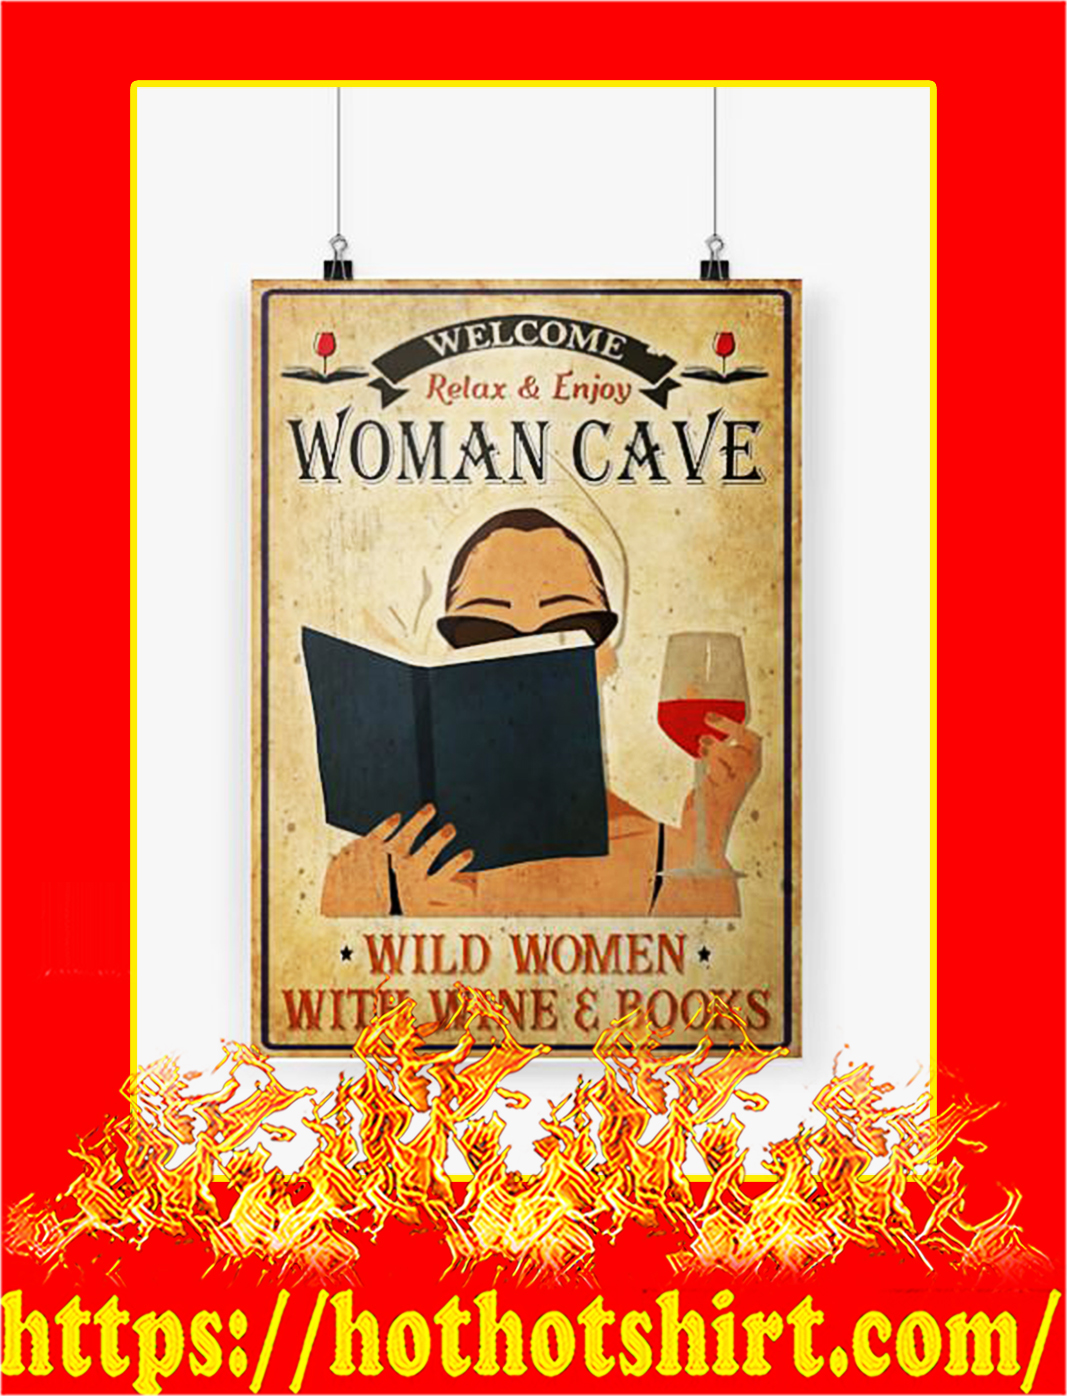 Wine and books welcome relax and enjoy woman cave poster - A1